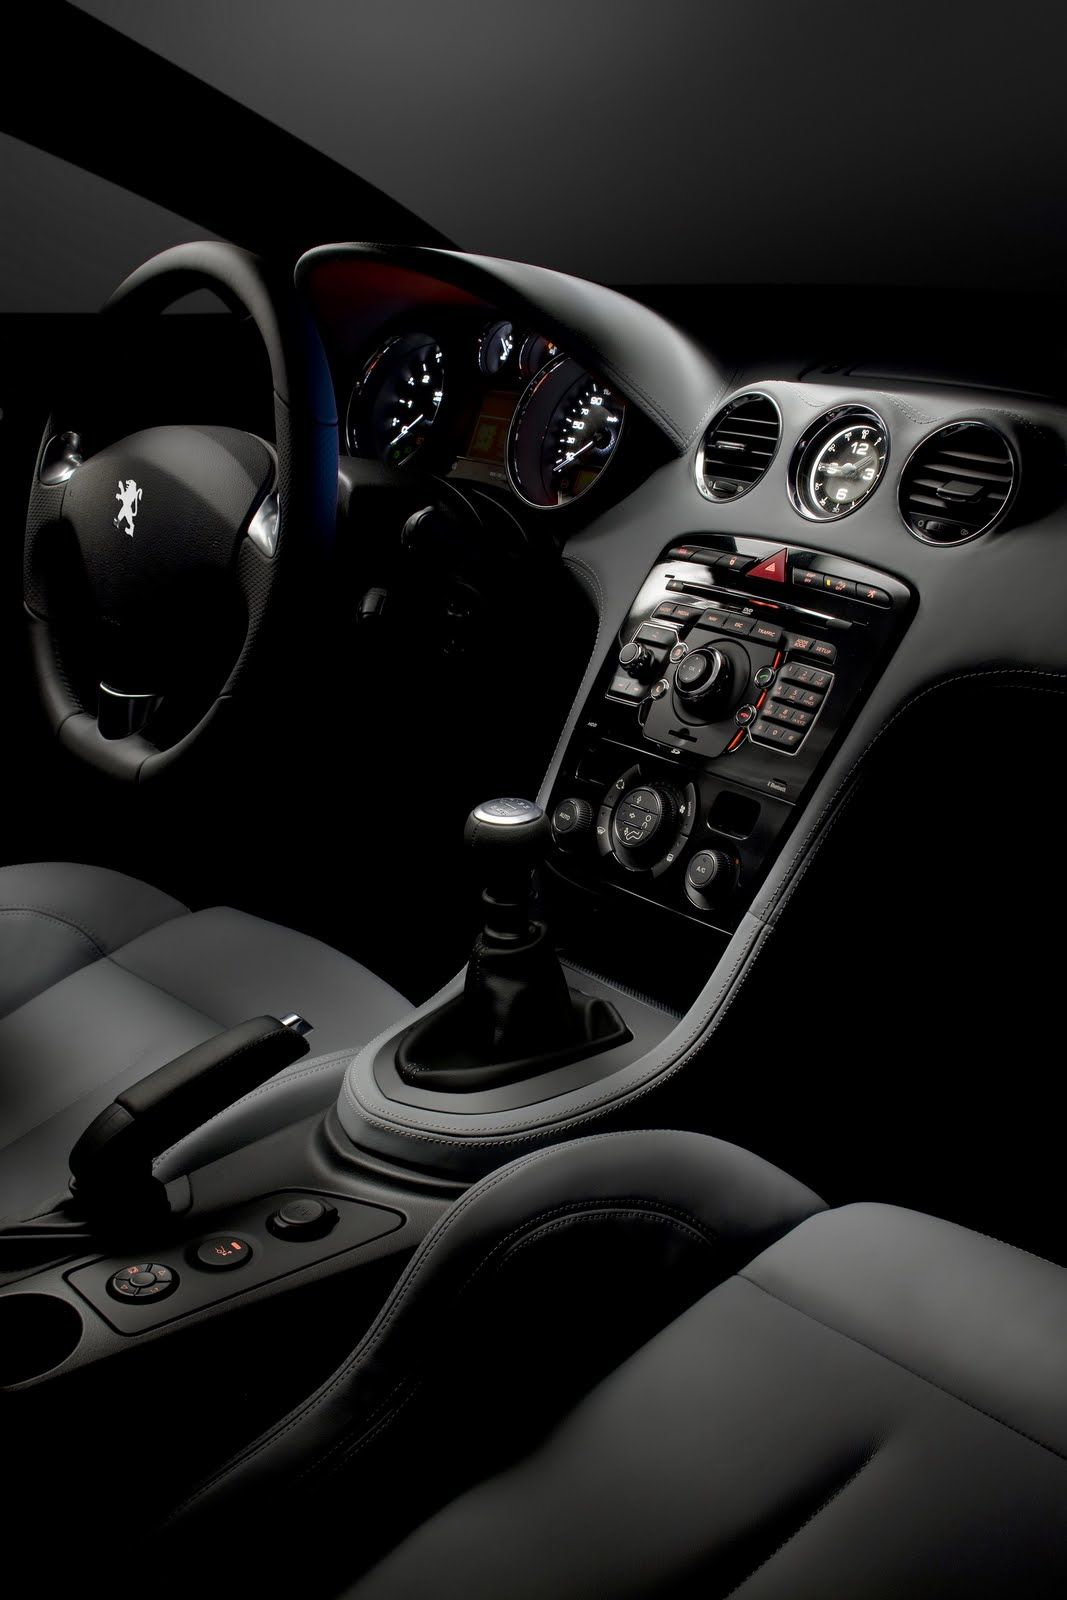 new peugeot rcz coupe officially revealed details and photos it s your auto world new. Black Bedroom Furniture Sets. Home Design Ideas